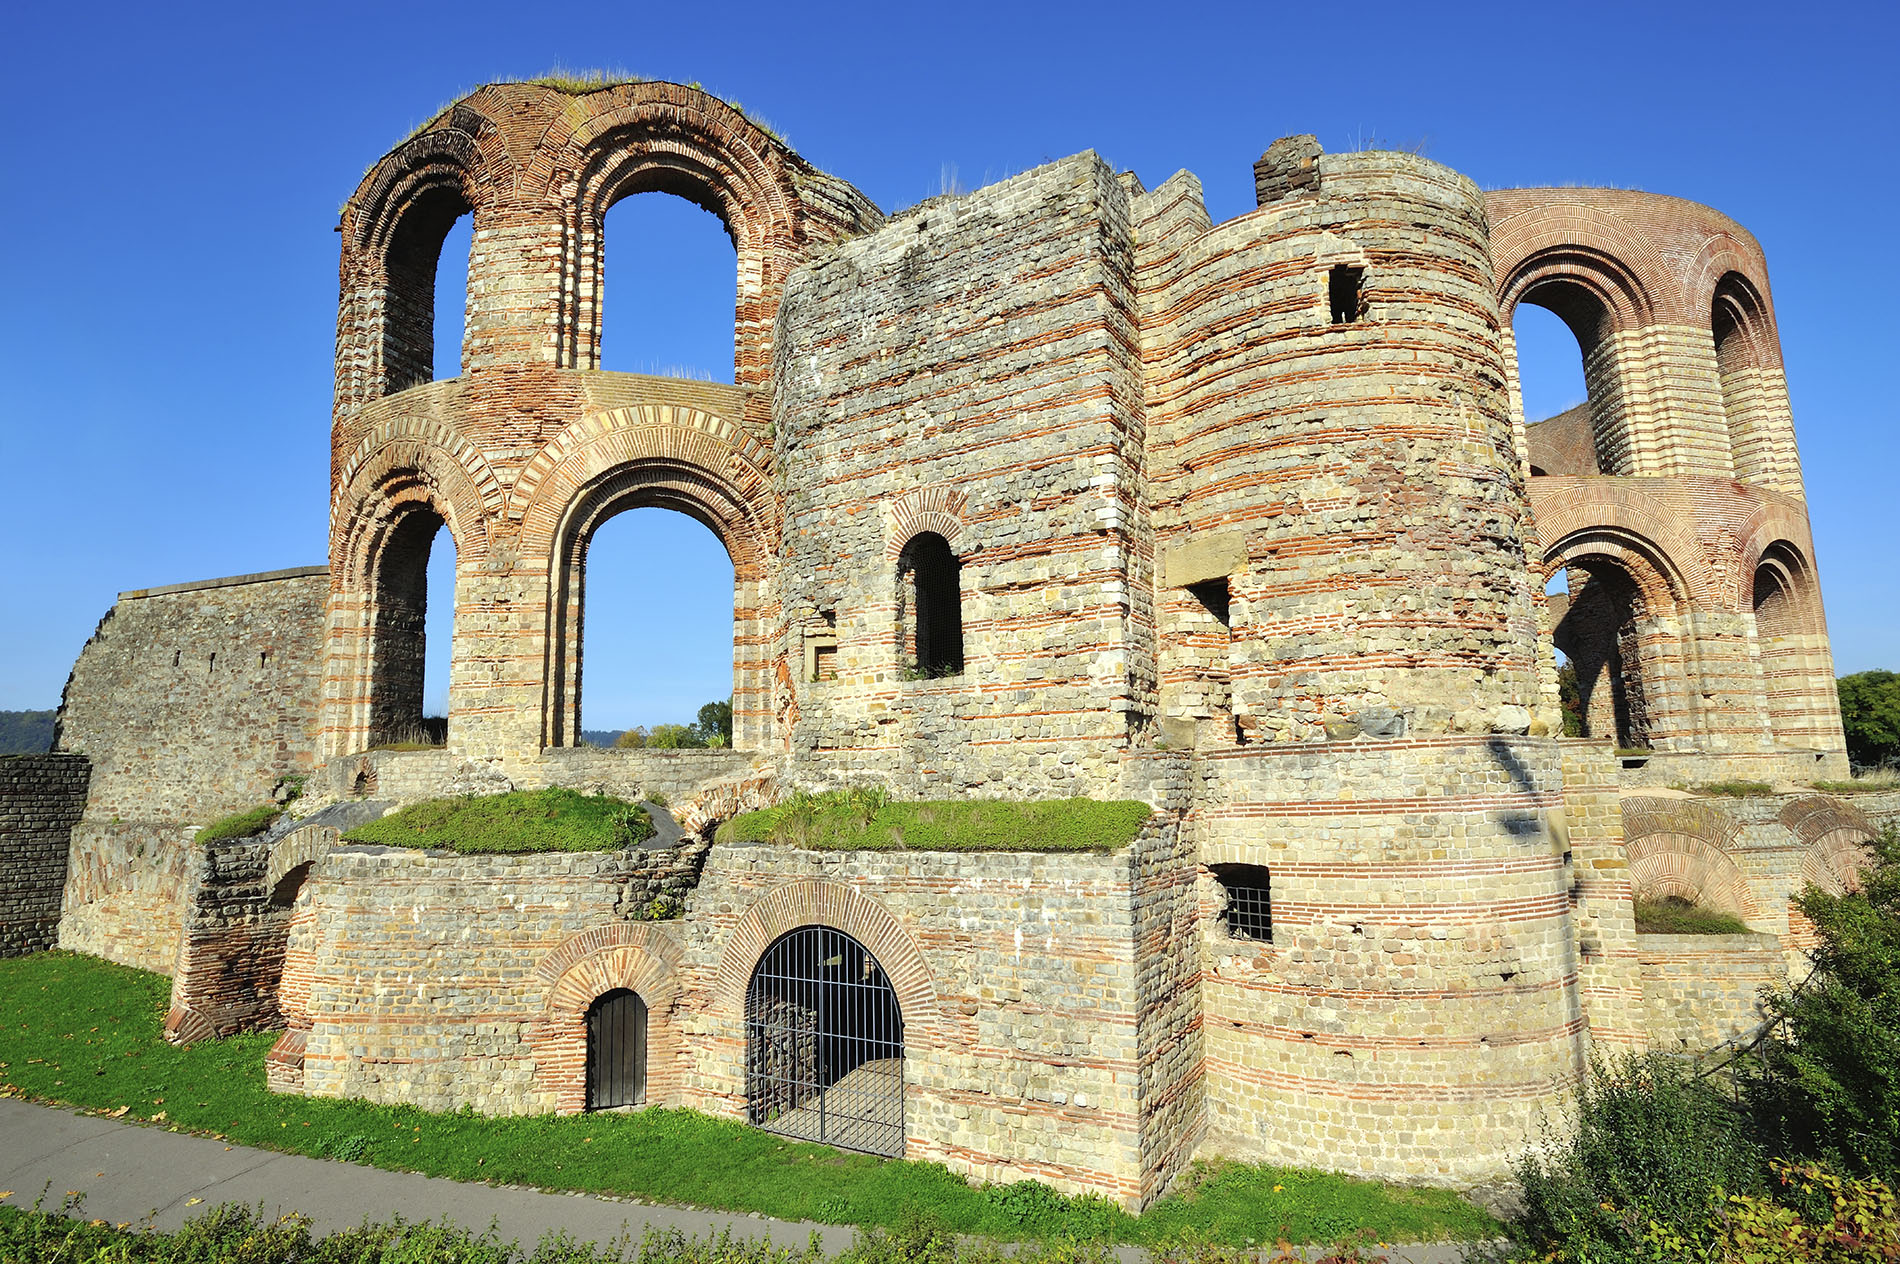 Historic ruins in the city of Trier, Germany